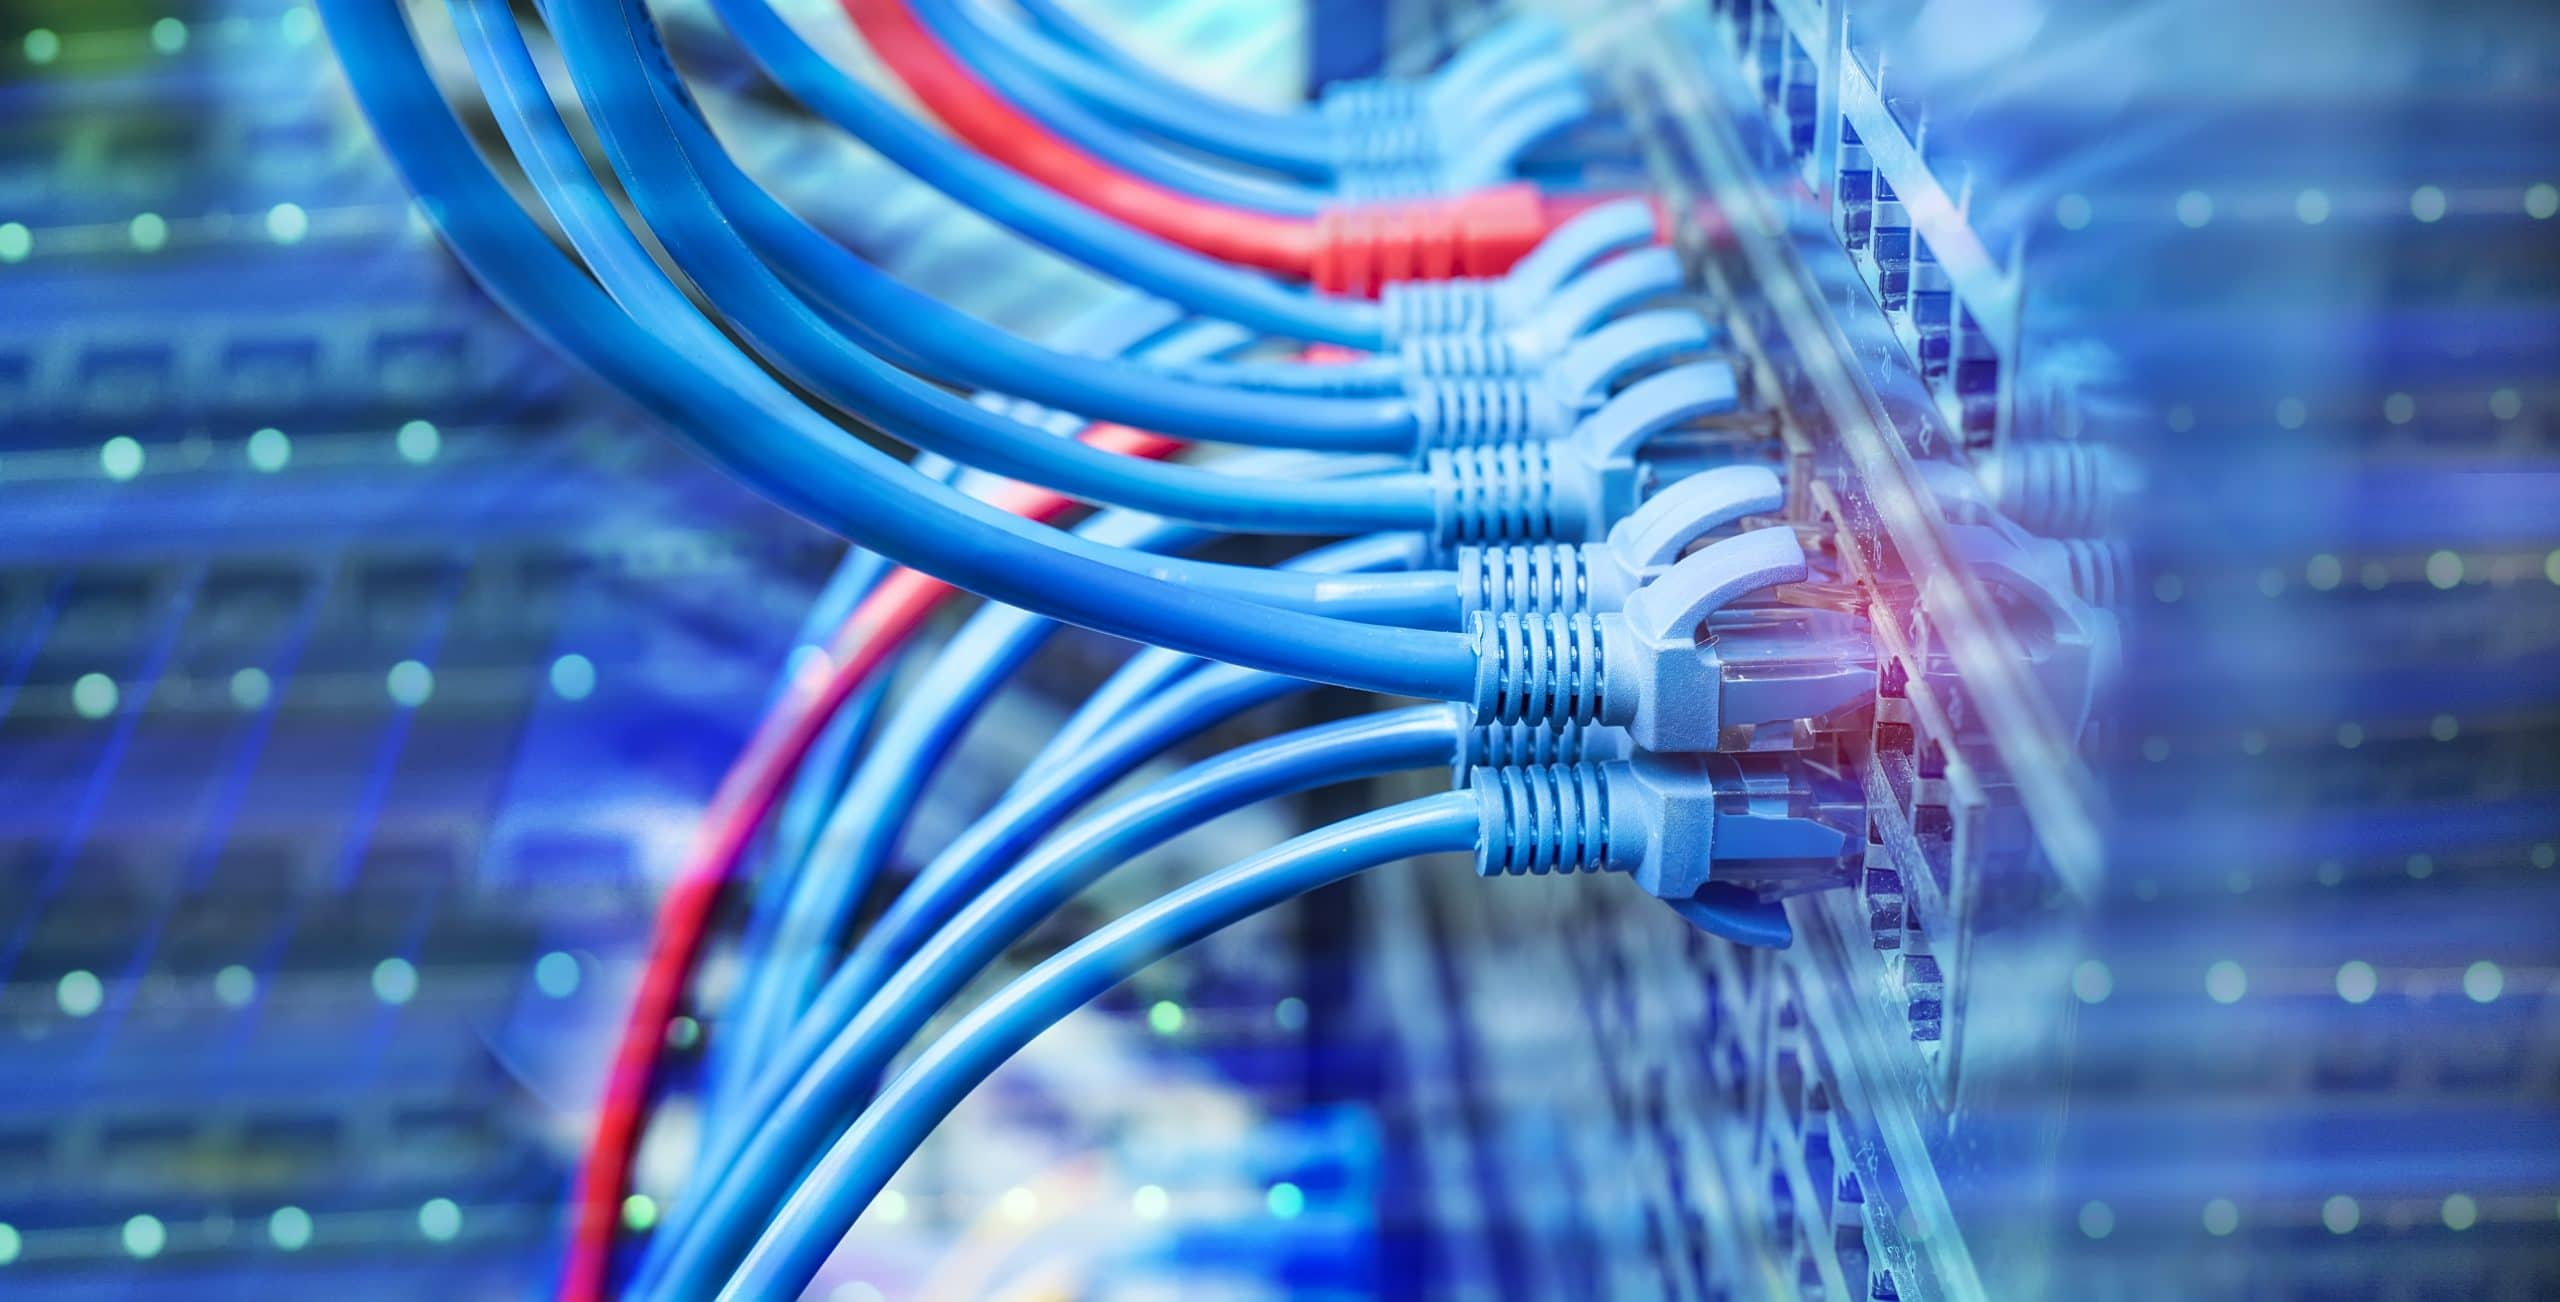 IT infrastructure - Network cables in switch and firewall in cloud computing data center server rack